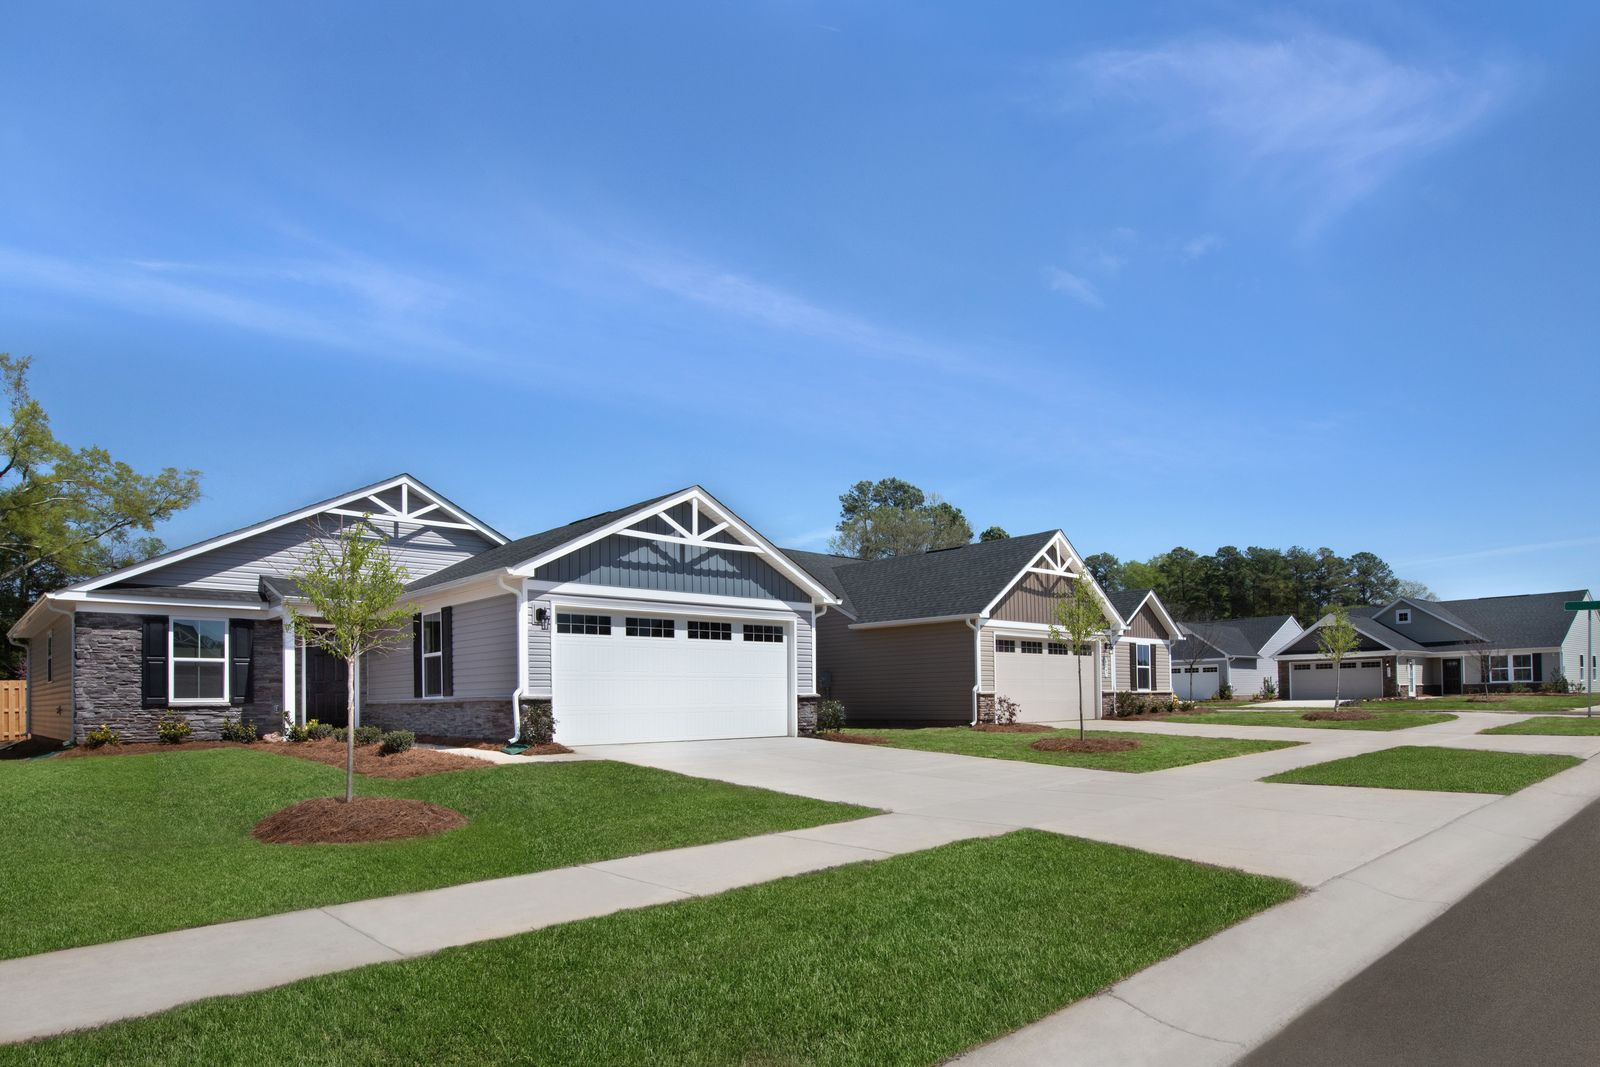 Own an affordable maintenance free home at Kline Station:Single level, low-maintenance homes in an active, well landscaped community with included lawn care and snow removal.Contact a Sales Rep to learn why our homeowners love living here!